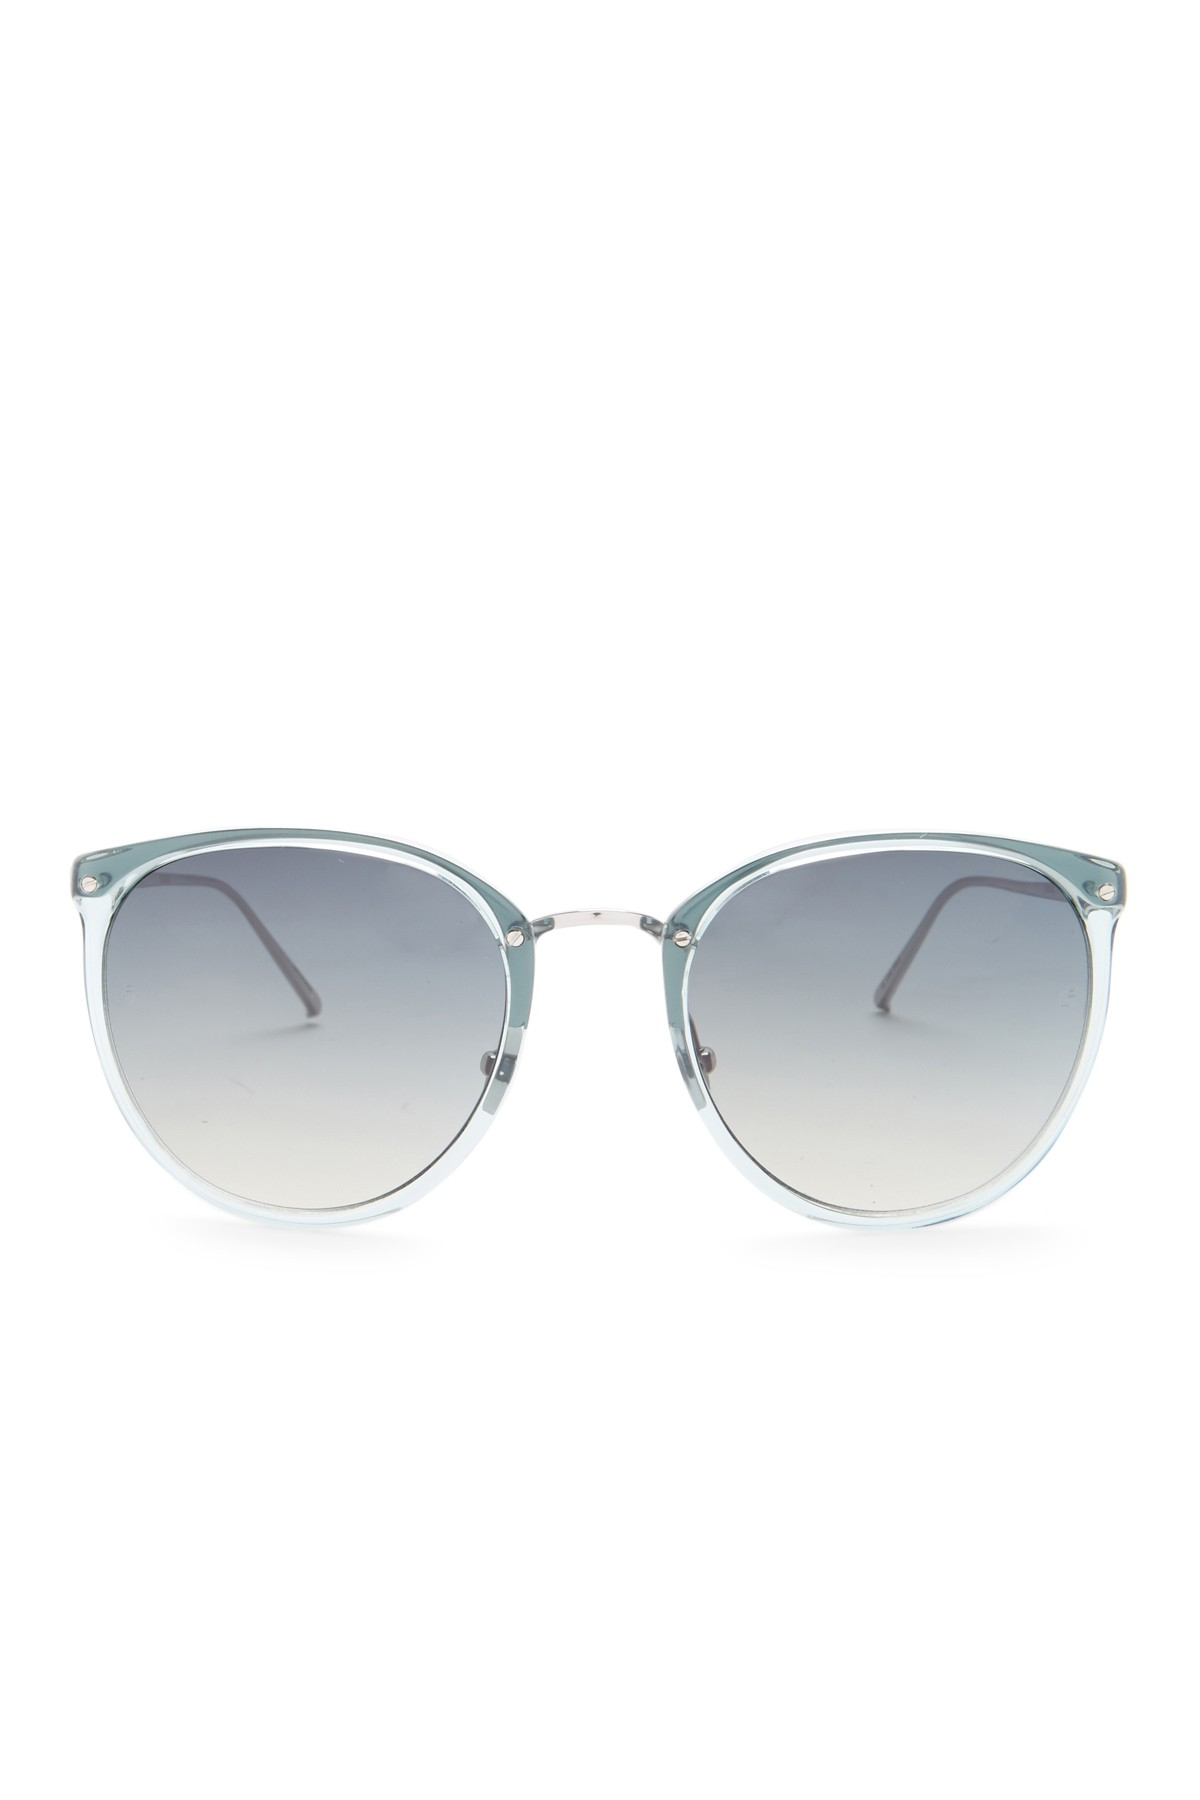 Linda Farrow Sunglasses | Sunglass Optical | Linda Farrow Gold Sunglasses